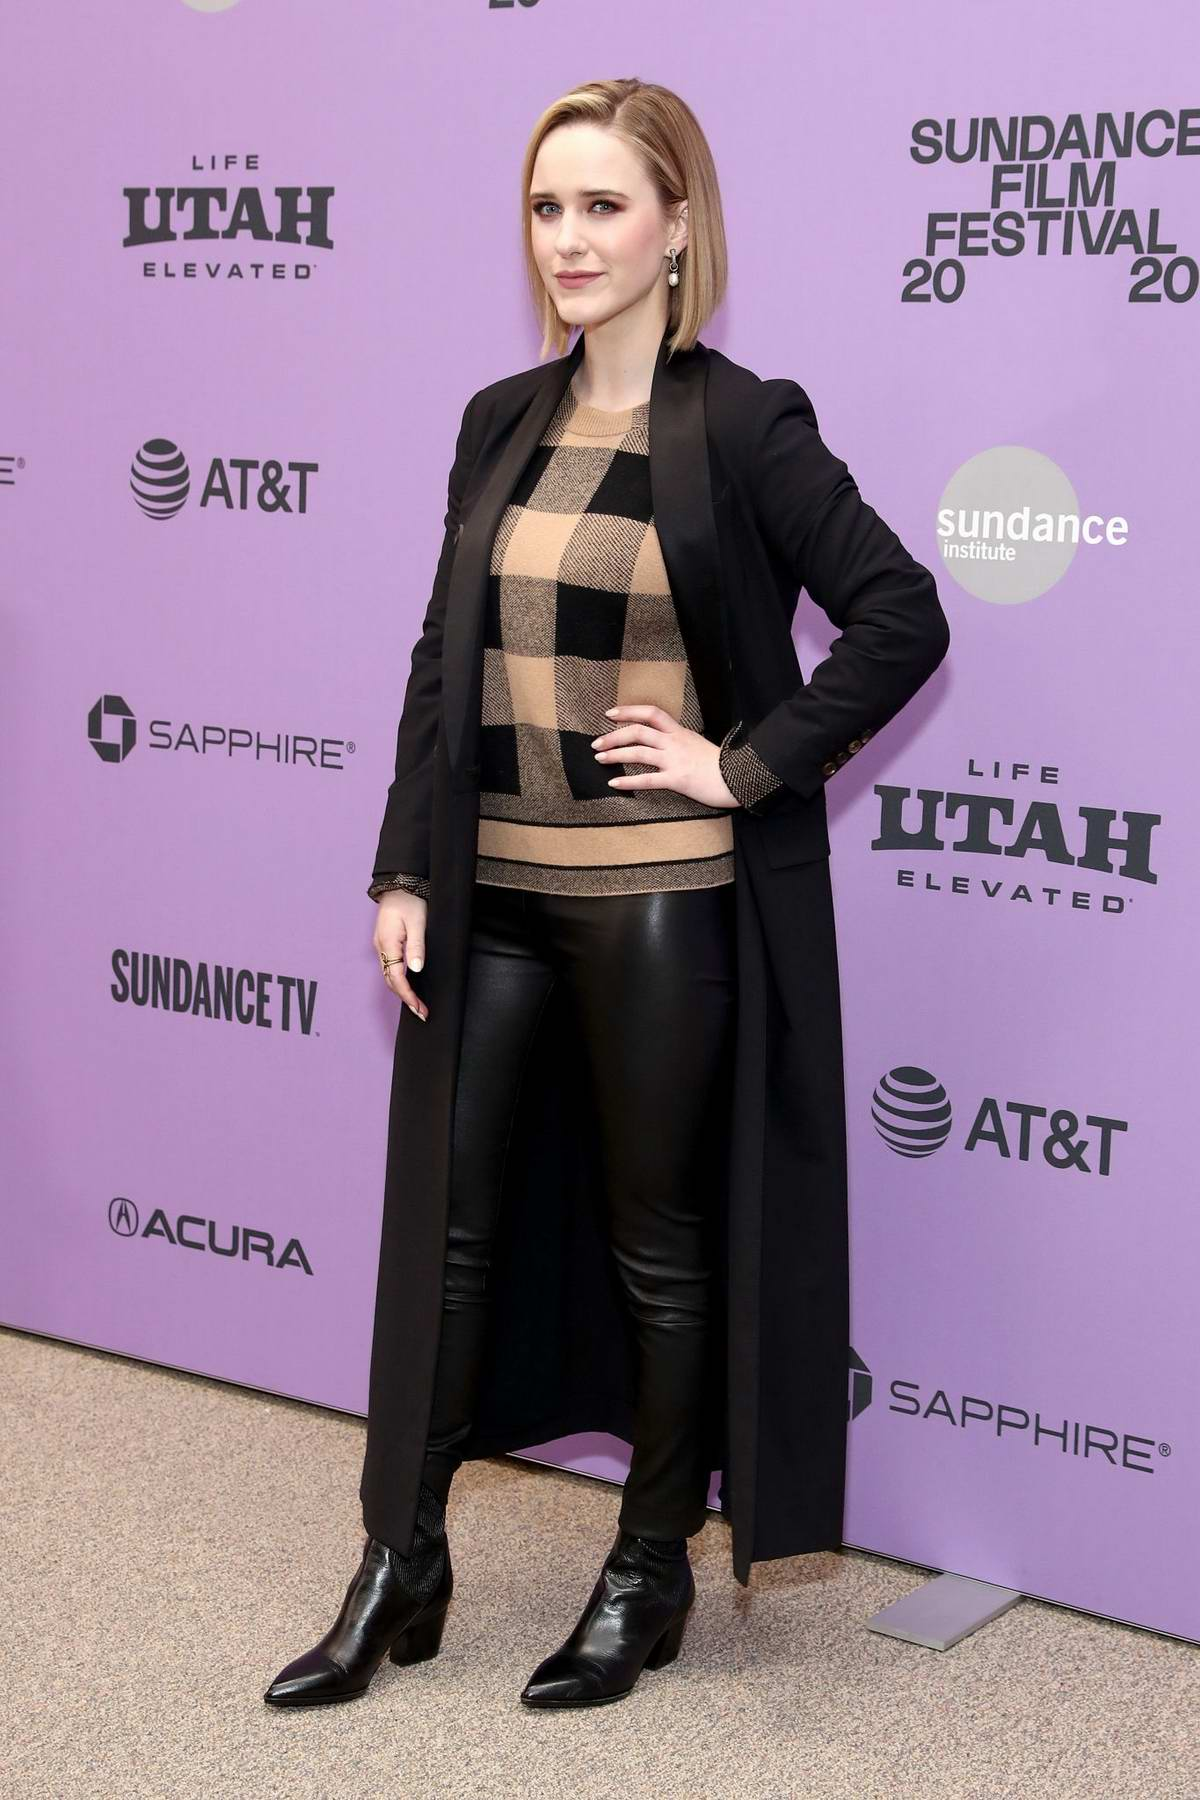 Rachel Brosnahan attends 'Ironbark' Premiere during the 2020 Sundance Film Festival in Park City, Utah